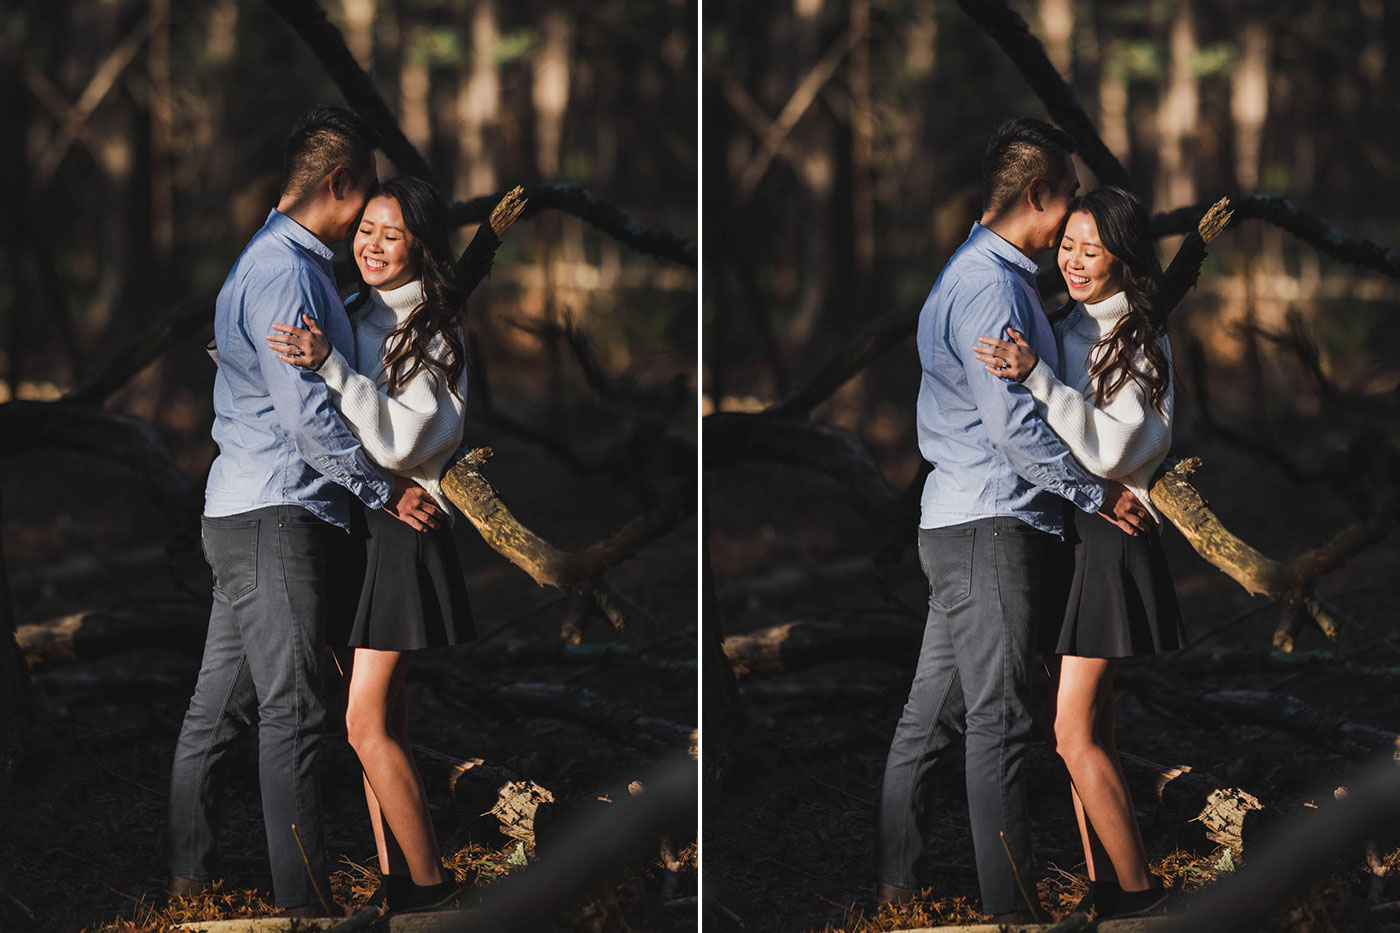 Portraits from an engagement session at Prosser Pines by Weddings by Hanel